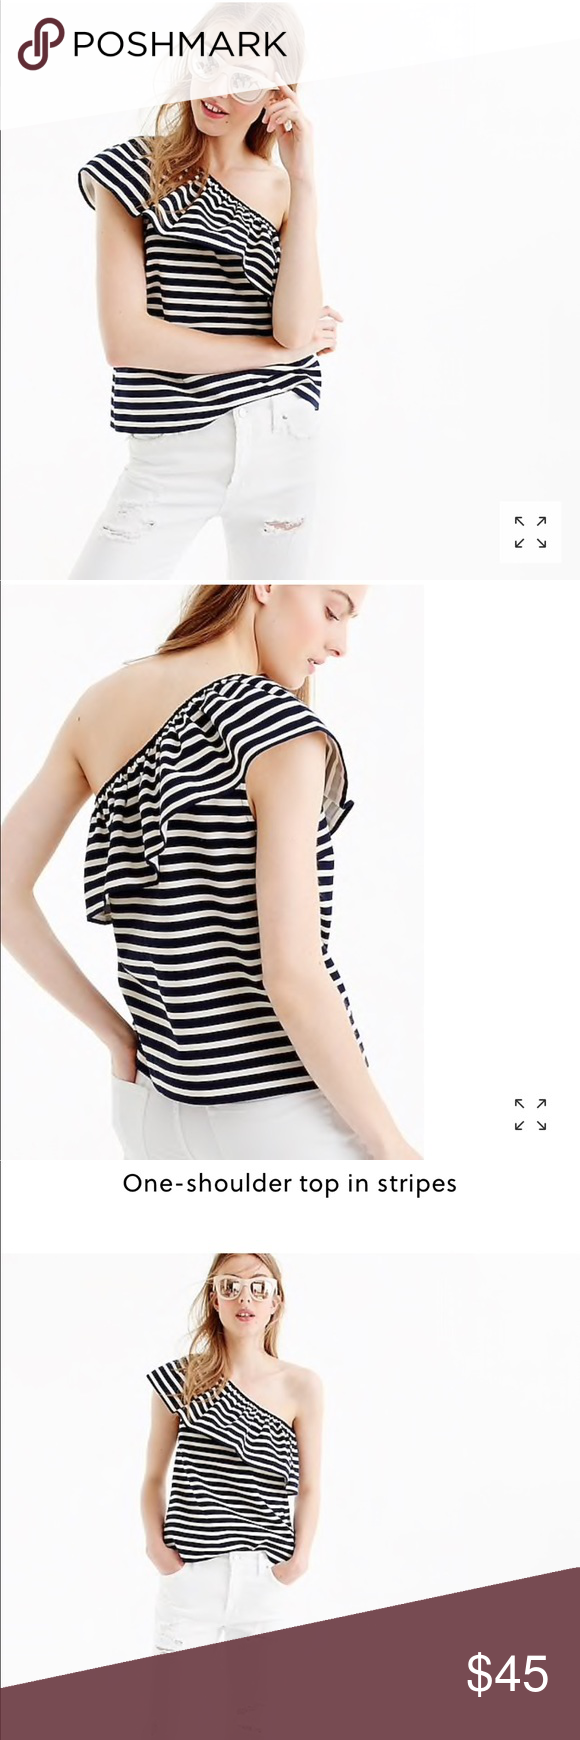 811674c6984 J. Crew one-shoulder top in stripes ruffle top J. Crew off the shoulder  ruffle top in stripes. Nautical top in stripes has asymmetrical ruffle  neckline.